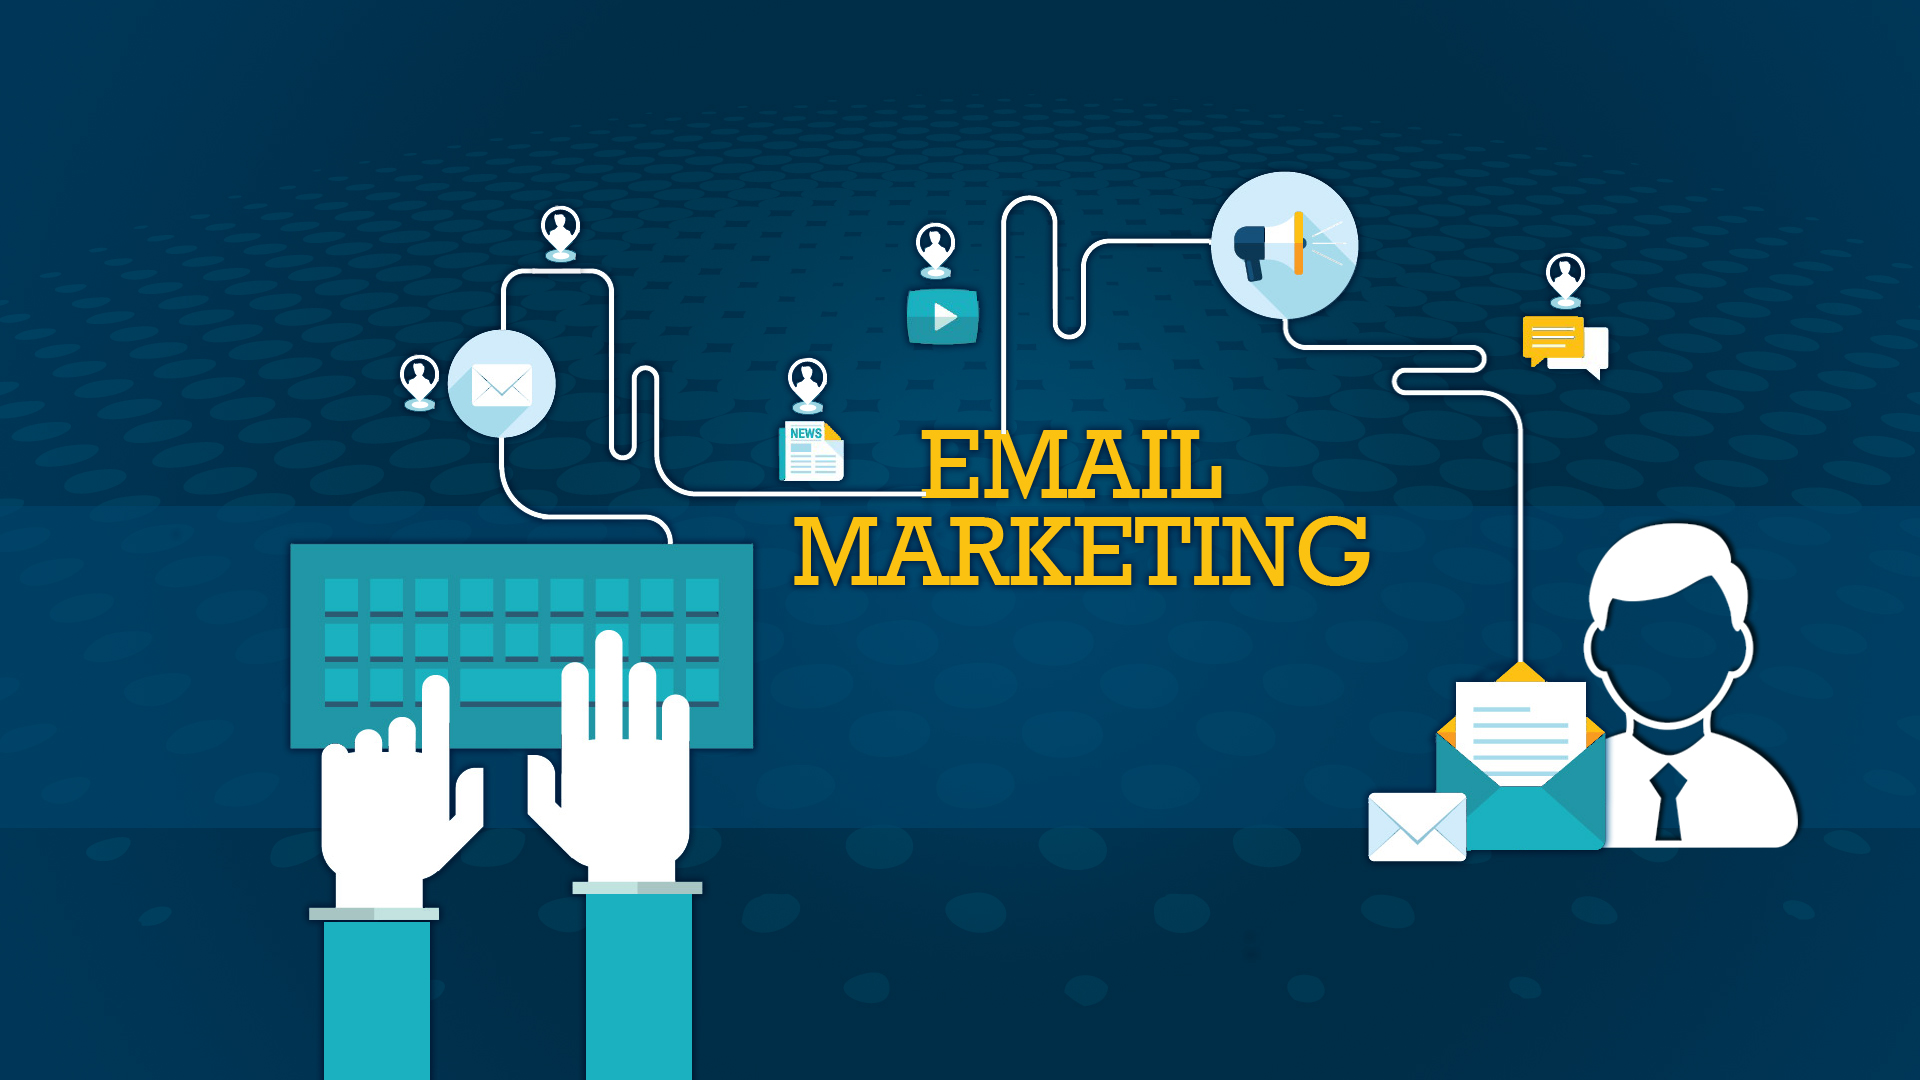 Email marketing Tools for Businesses to Use